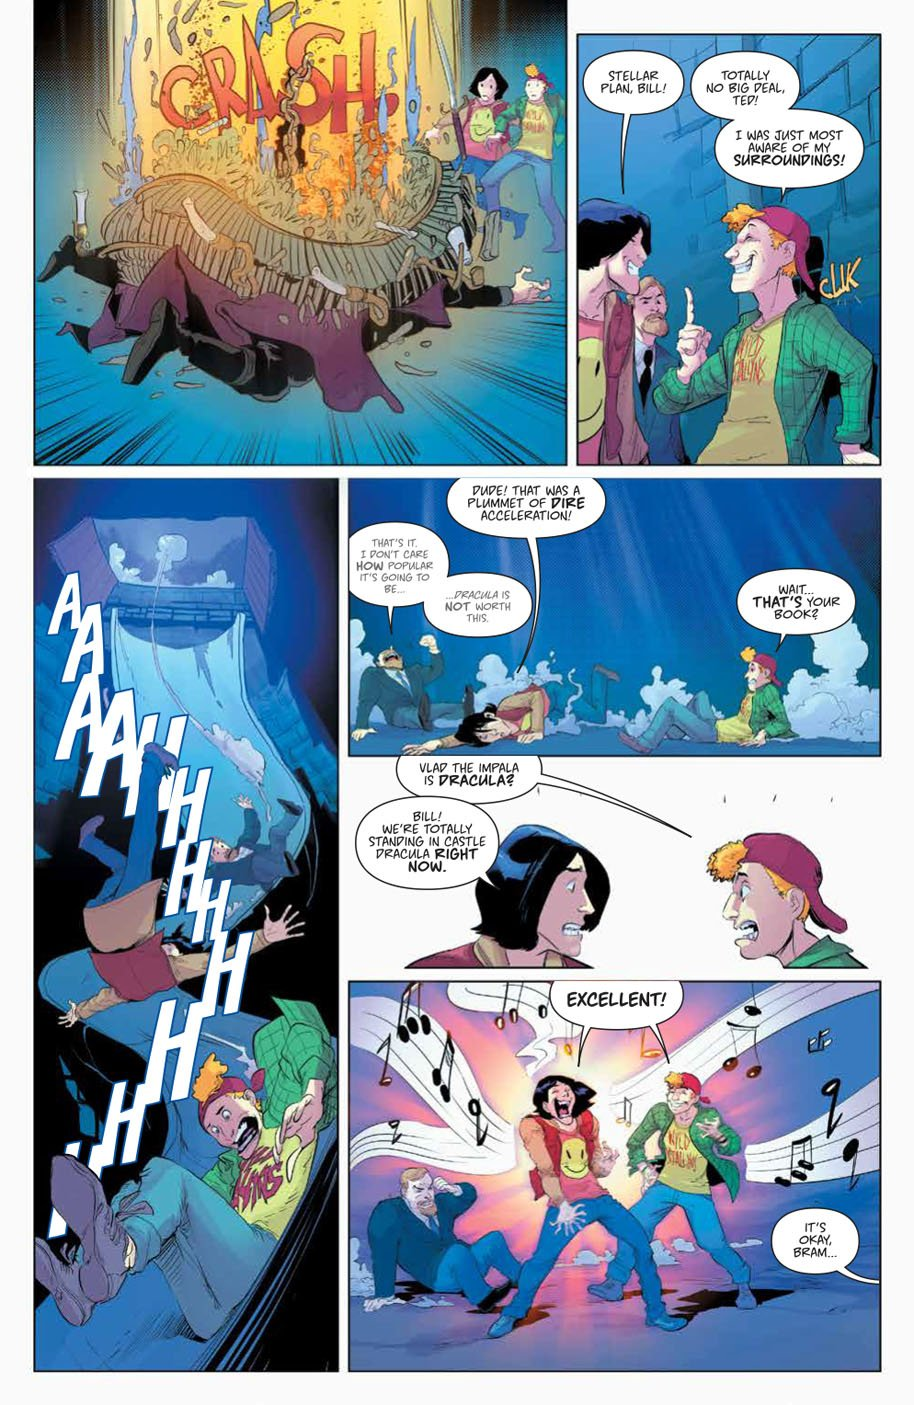 Bill & Ted Save the Universe 1 page 3